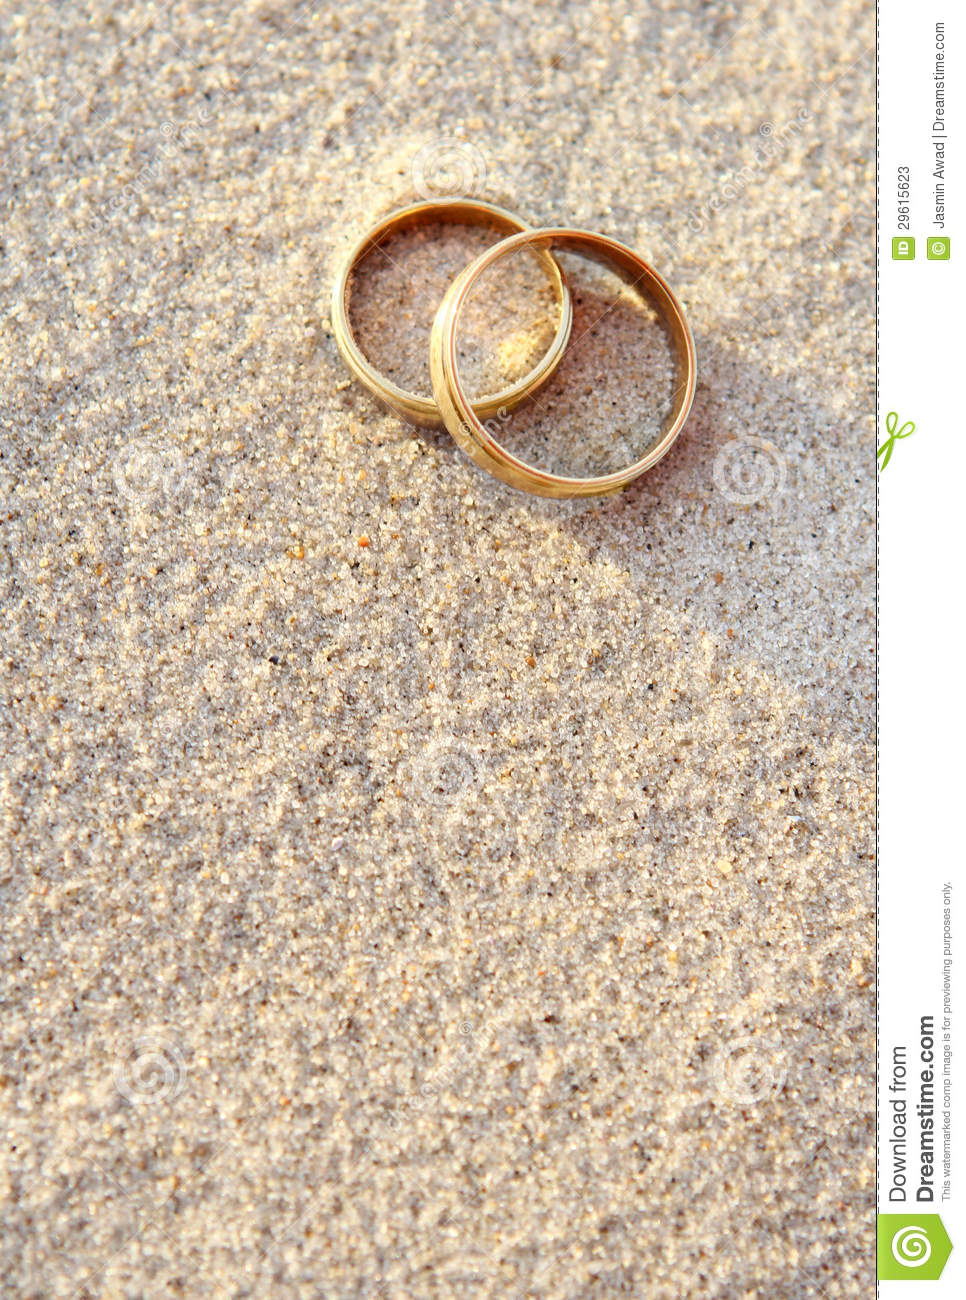 beach files inc rings of picture palm jewelry ideas oprisi and popular wedding michelle unbelievable